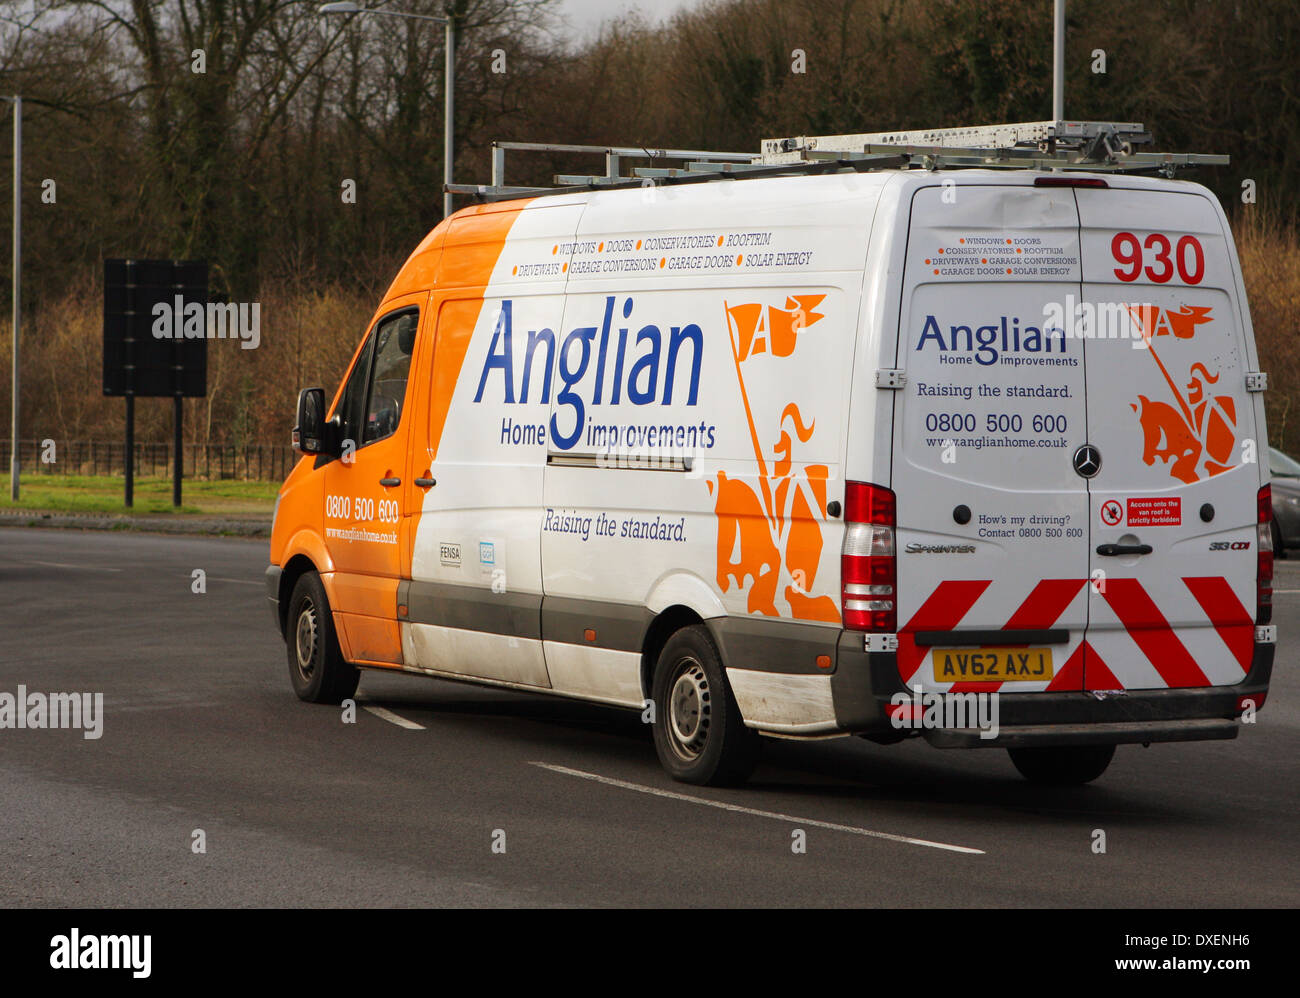 An Anglian Home Improvements Van Traveling Around A Roundabout In Stock Photo Alamy